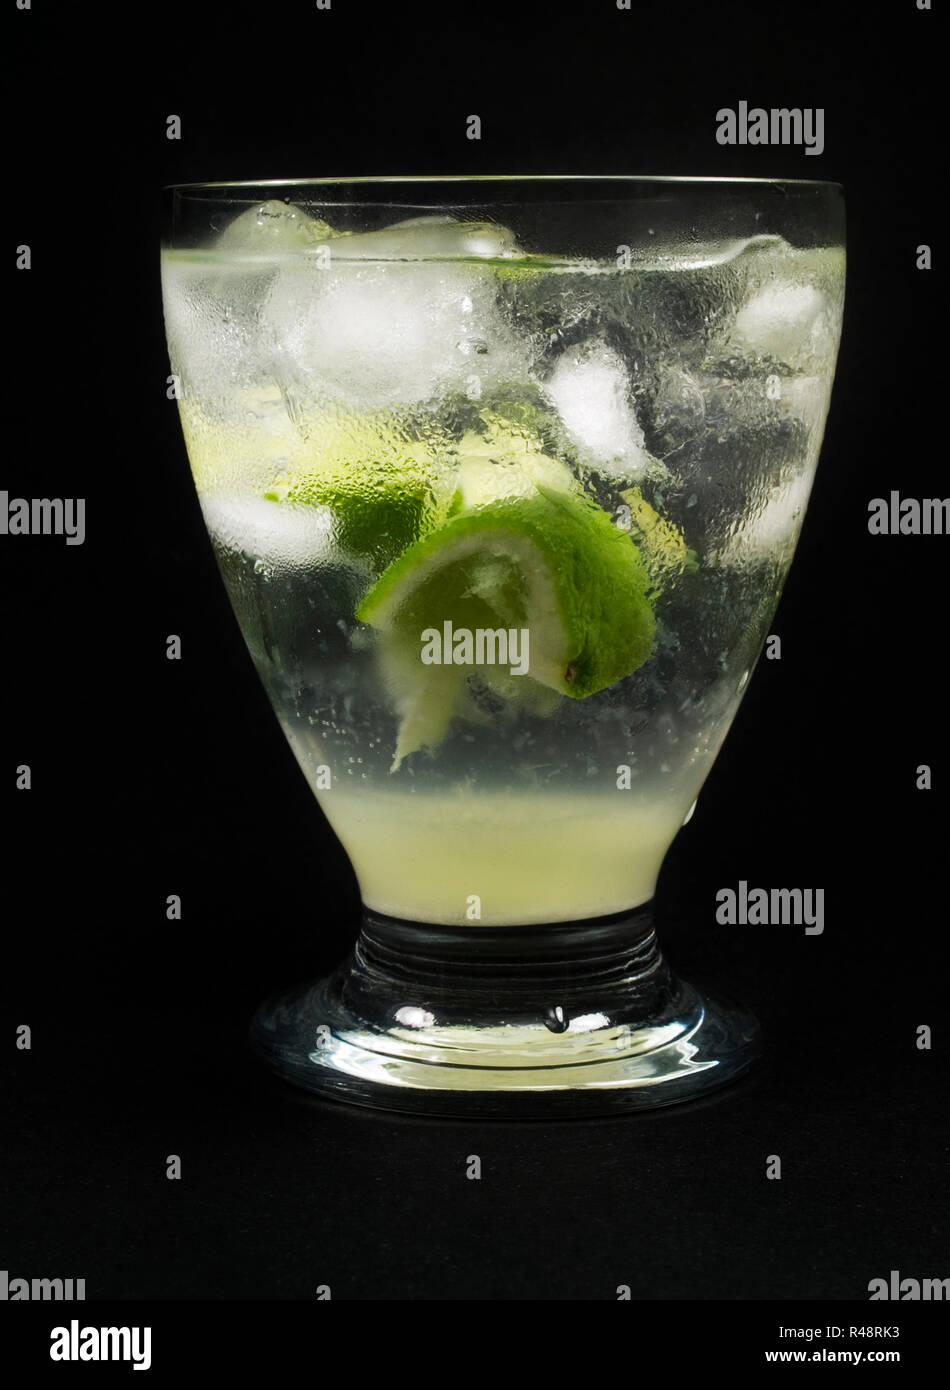 Cocktails Collection - Gimlet,Cocktails Collection - Gimlet,Cocktails Collection - Gimlet,Cocktails Collection - Gimlet,Cocktails Collection - Gimlet,Cocktails Collection - Gimlet,Cocktails Collection - Gimlet,Cocktails Collection - Gimlet - Stock Image